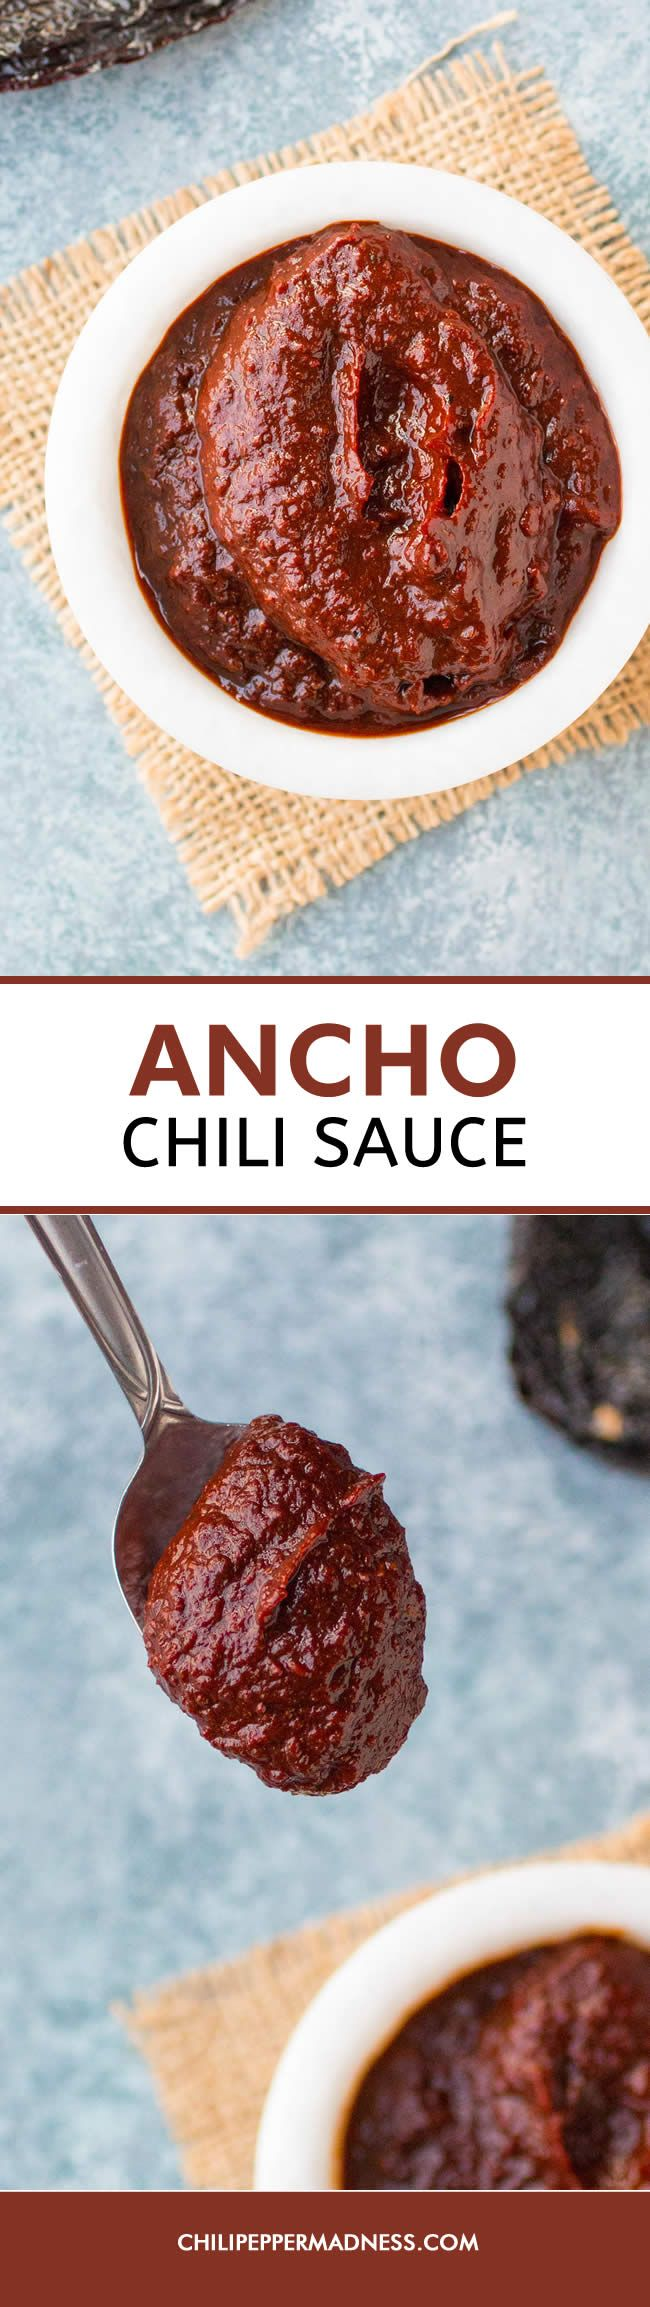 Ancho Chili Sauce - This easy-to-make red chili sauce recipe is a flavor POWERHOUSE and essential for Mexican or Tex-Mex cuisine, made with lightly toasted ancho peppers. Perfect for enchiladas, chilaquiles, tacos and so much more.